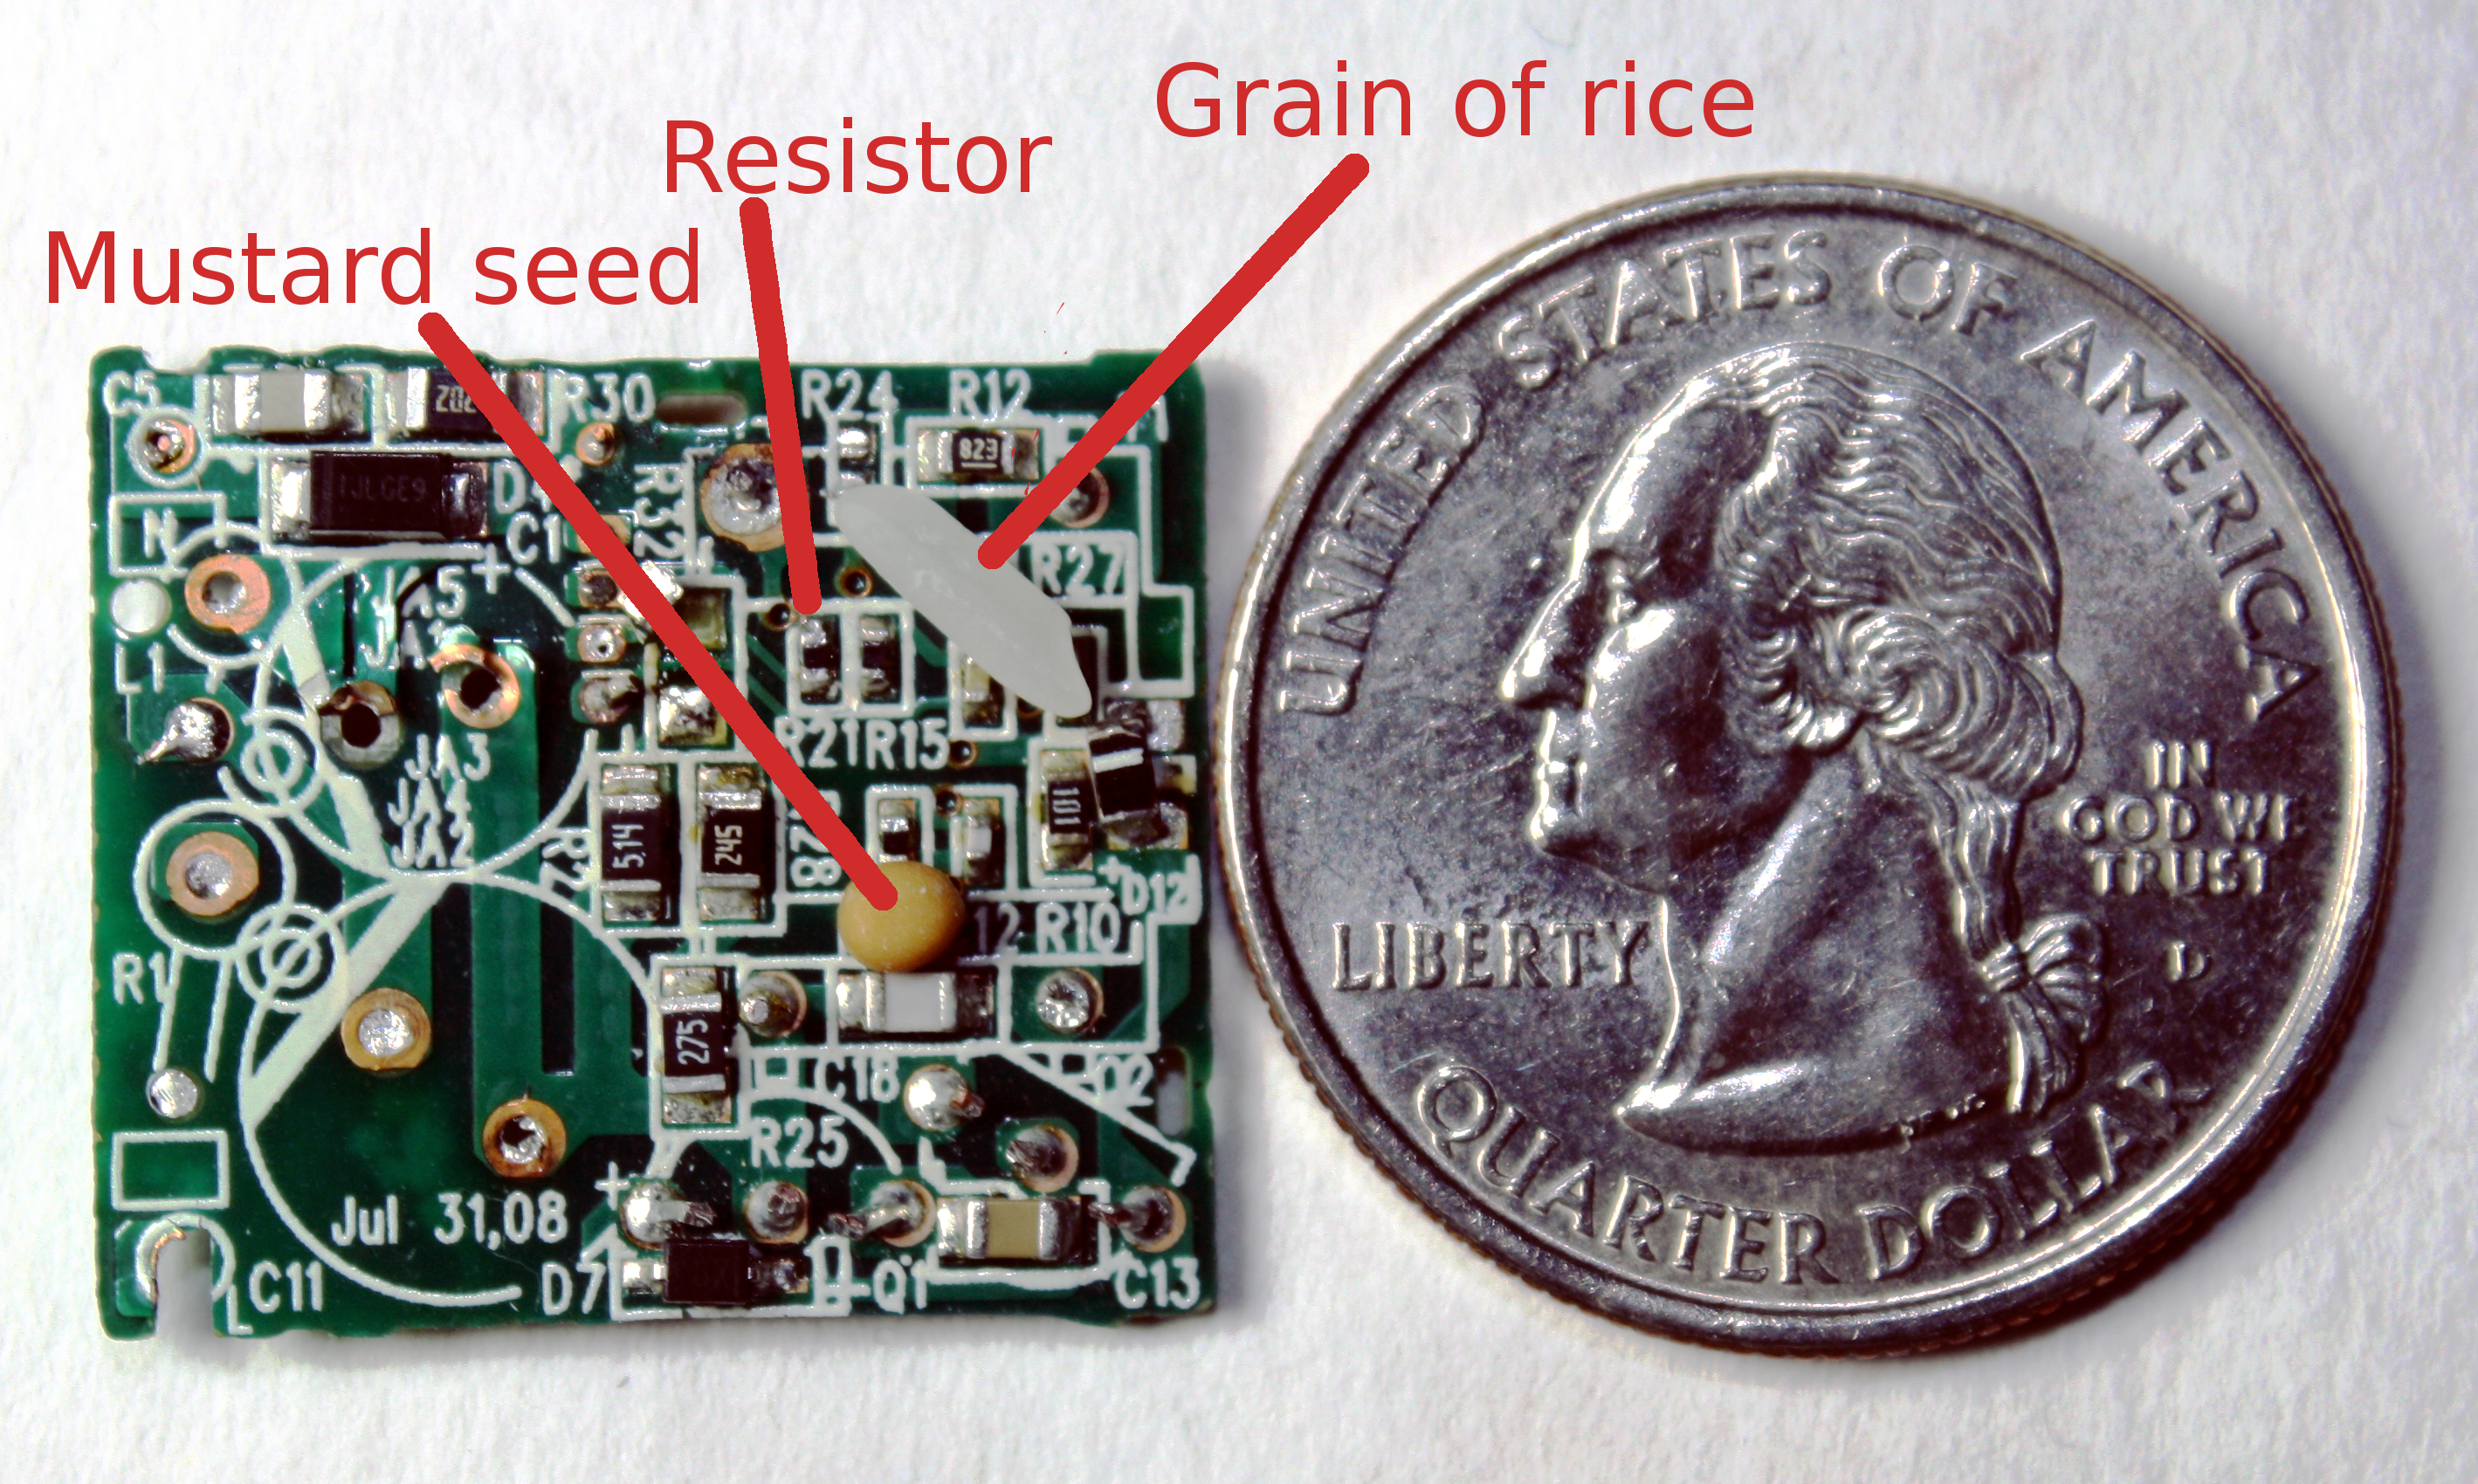 Apple Iphone Charger Teardown Quality In A Tiny Expensive Package 12 Volt Car Battery Diagram With Cutaway And Labeled Components Circuit Board Compared To Mustard Seed Grain Of Rice